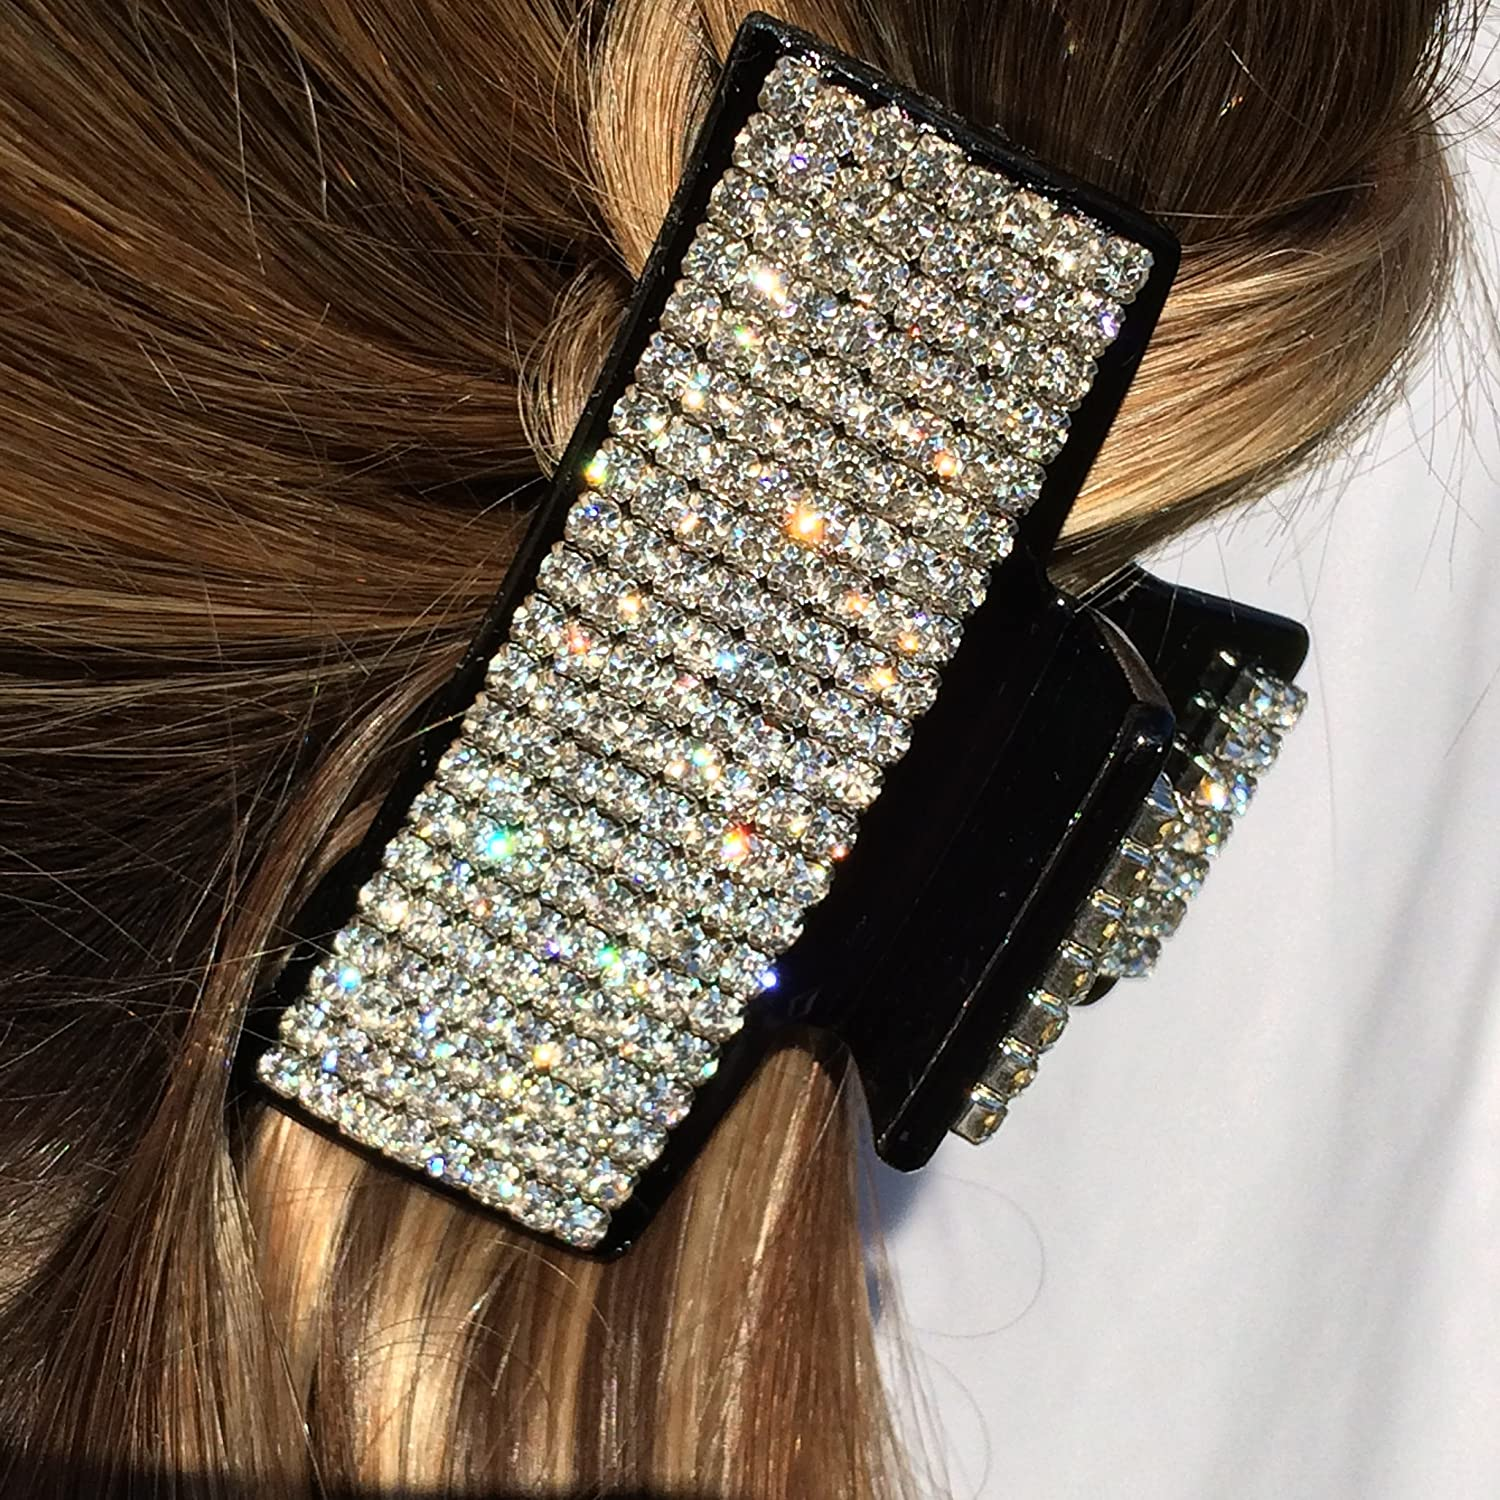 QueenMee Diamante Hair Clip Diamante Hair Claw Clip Rhinestone Hair Claw Rhinestone Hair Clip Crystal Hair Clip Crystal Hair Claw Black Crystal Hair Clip Medium Hair Claw Clamp Hair Jaw Hair Clamp 90 degrees